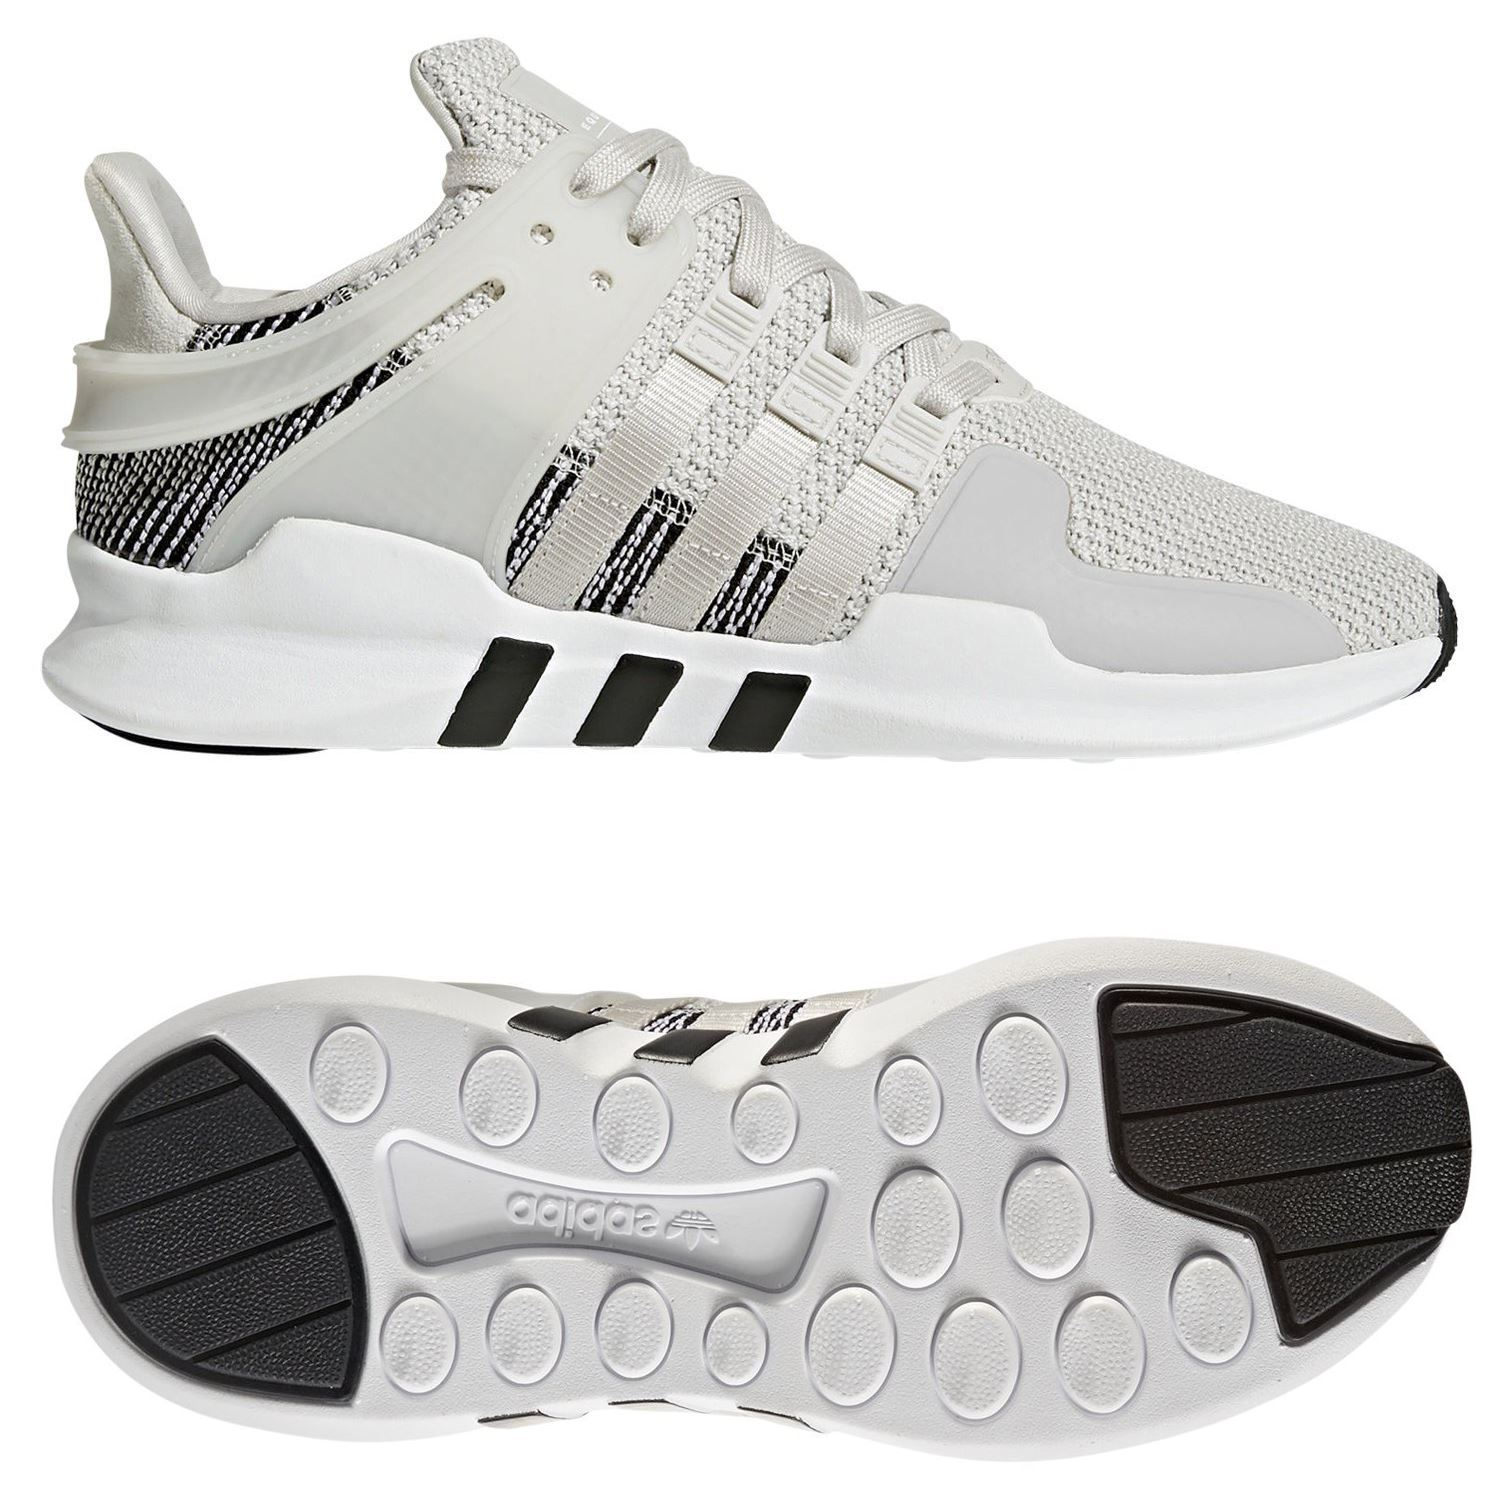 best service a9b1c 67dc9 Details about adidas MEN'S EQT SUPPORT ADV TRAINERS WHITE SHOES SNEAKERS  RUNNING 3 STRIPES GYM